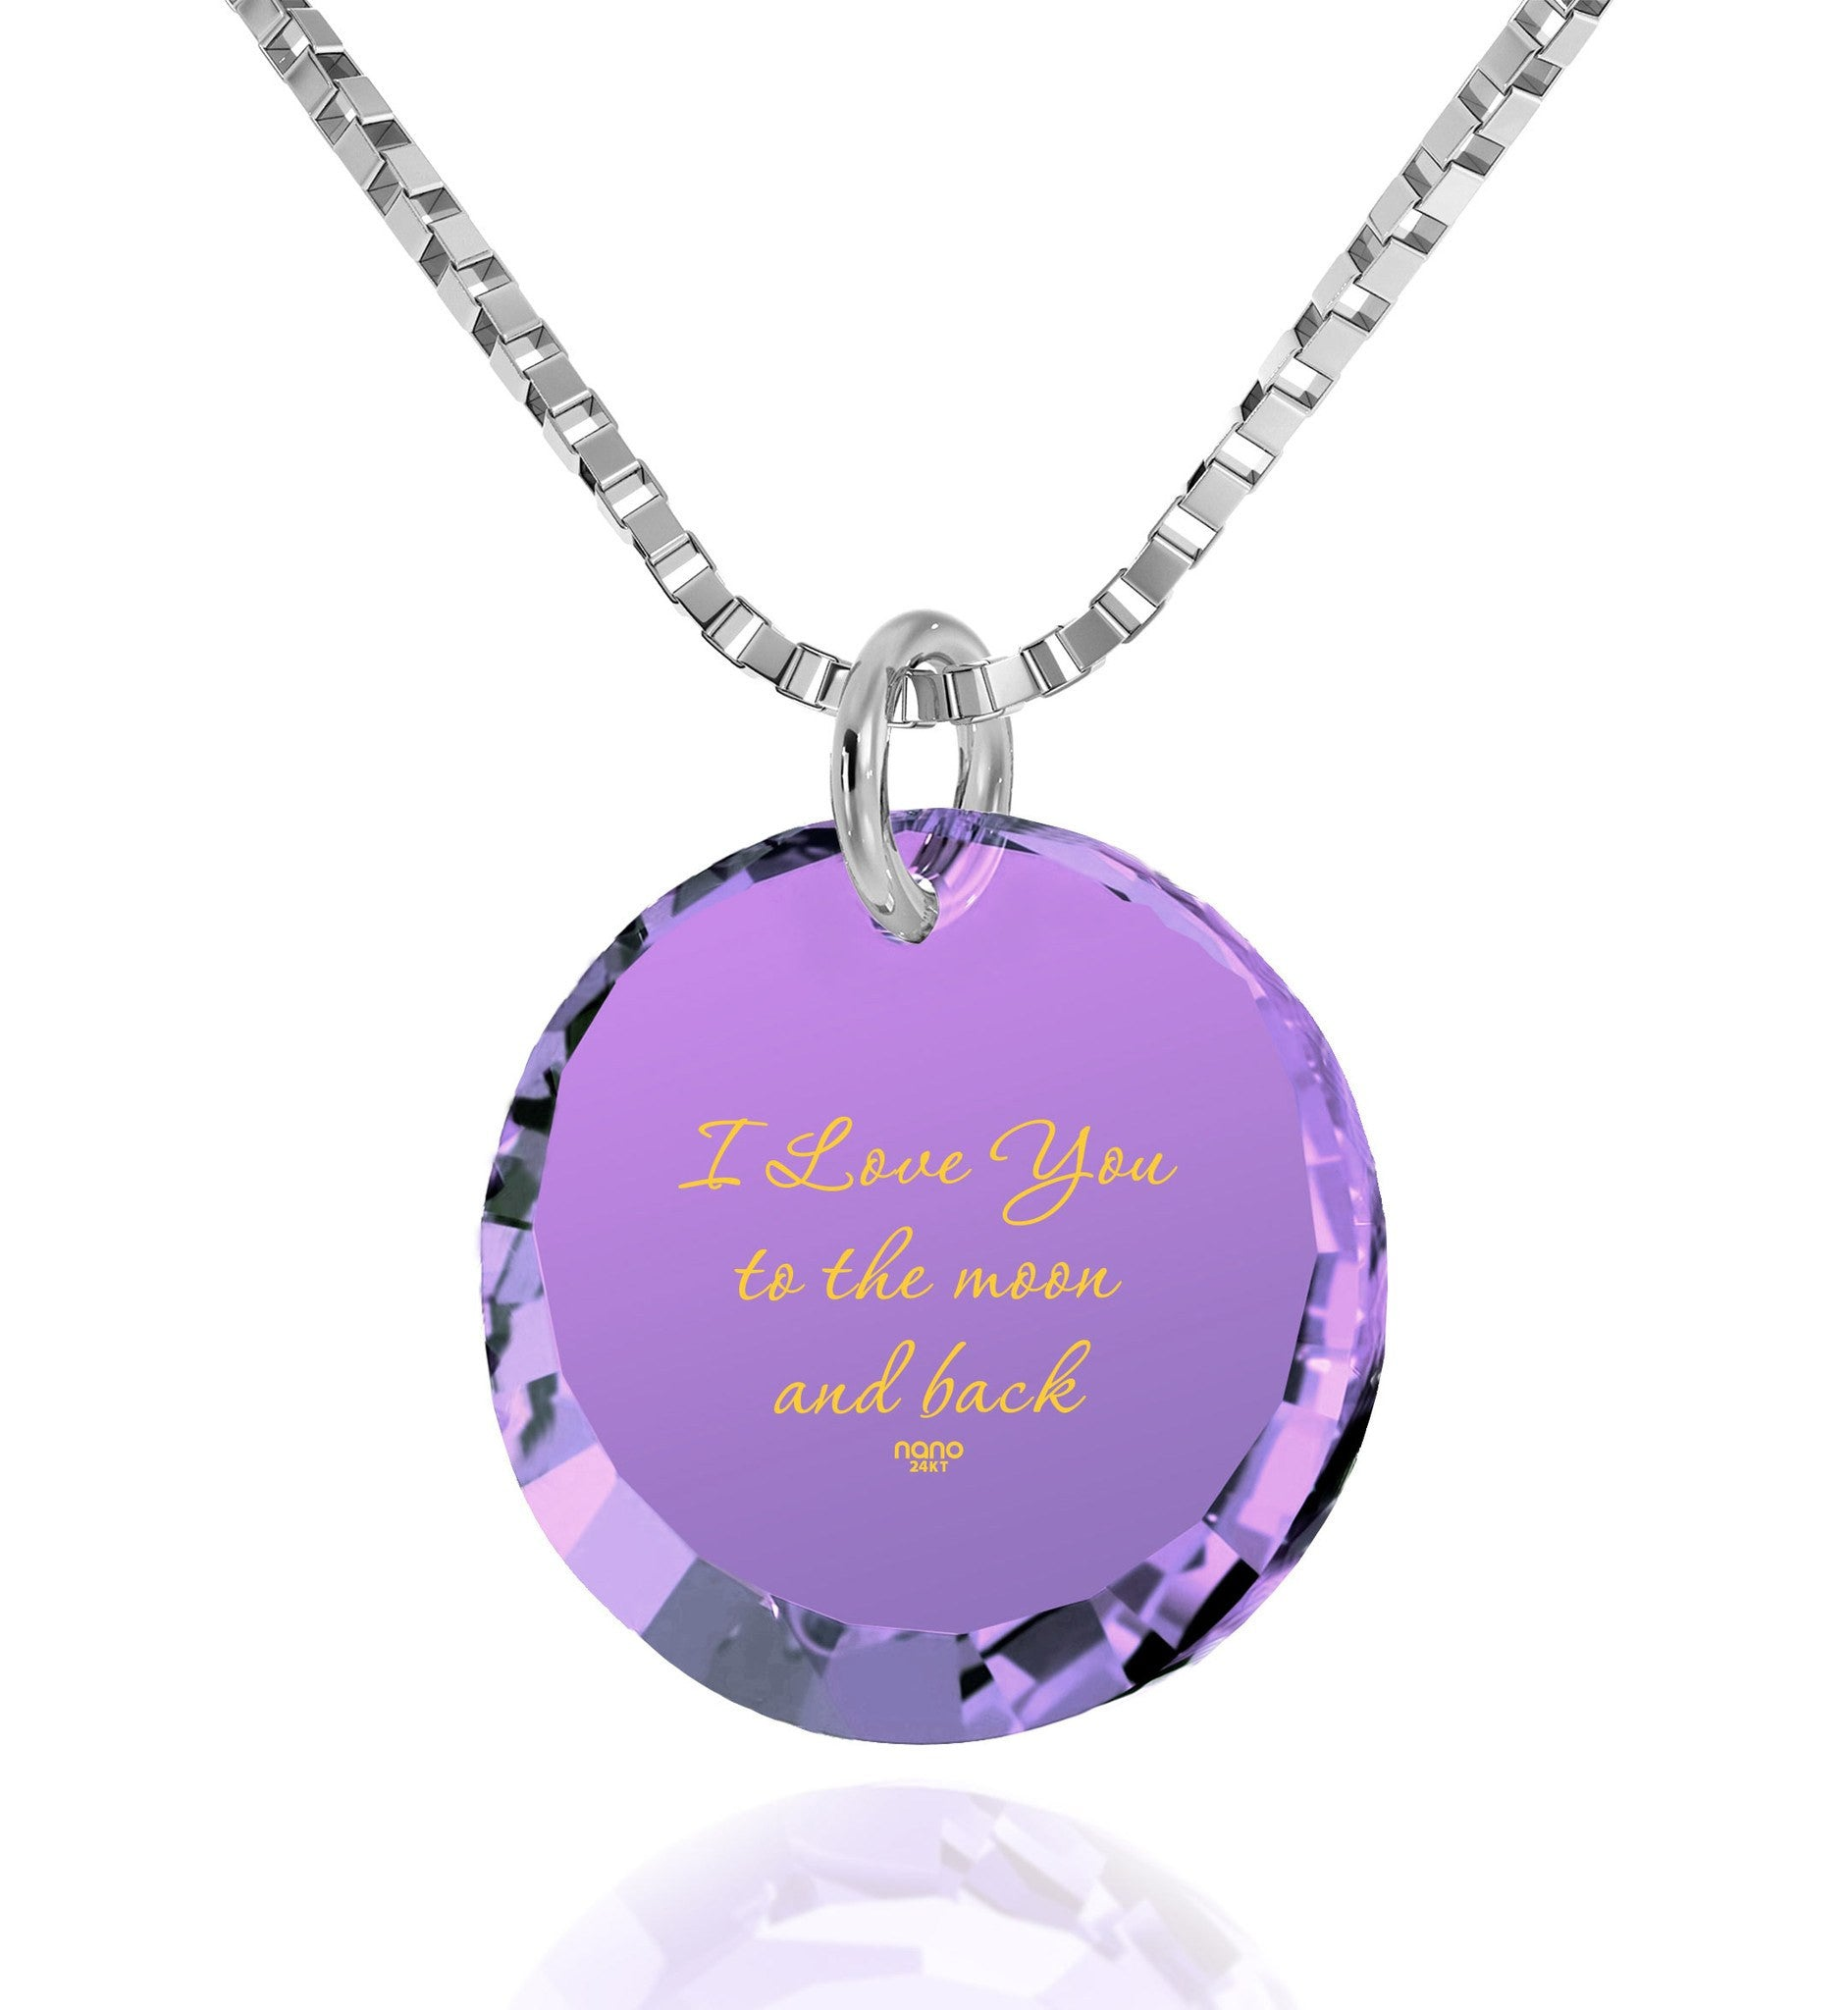 What to Get Wife for Christmas, Light Amethyst,14k White Gold Necklace, Pure Romance Products, Nano Jewelry